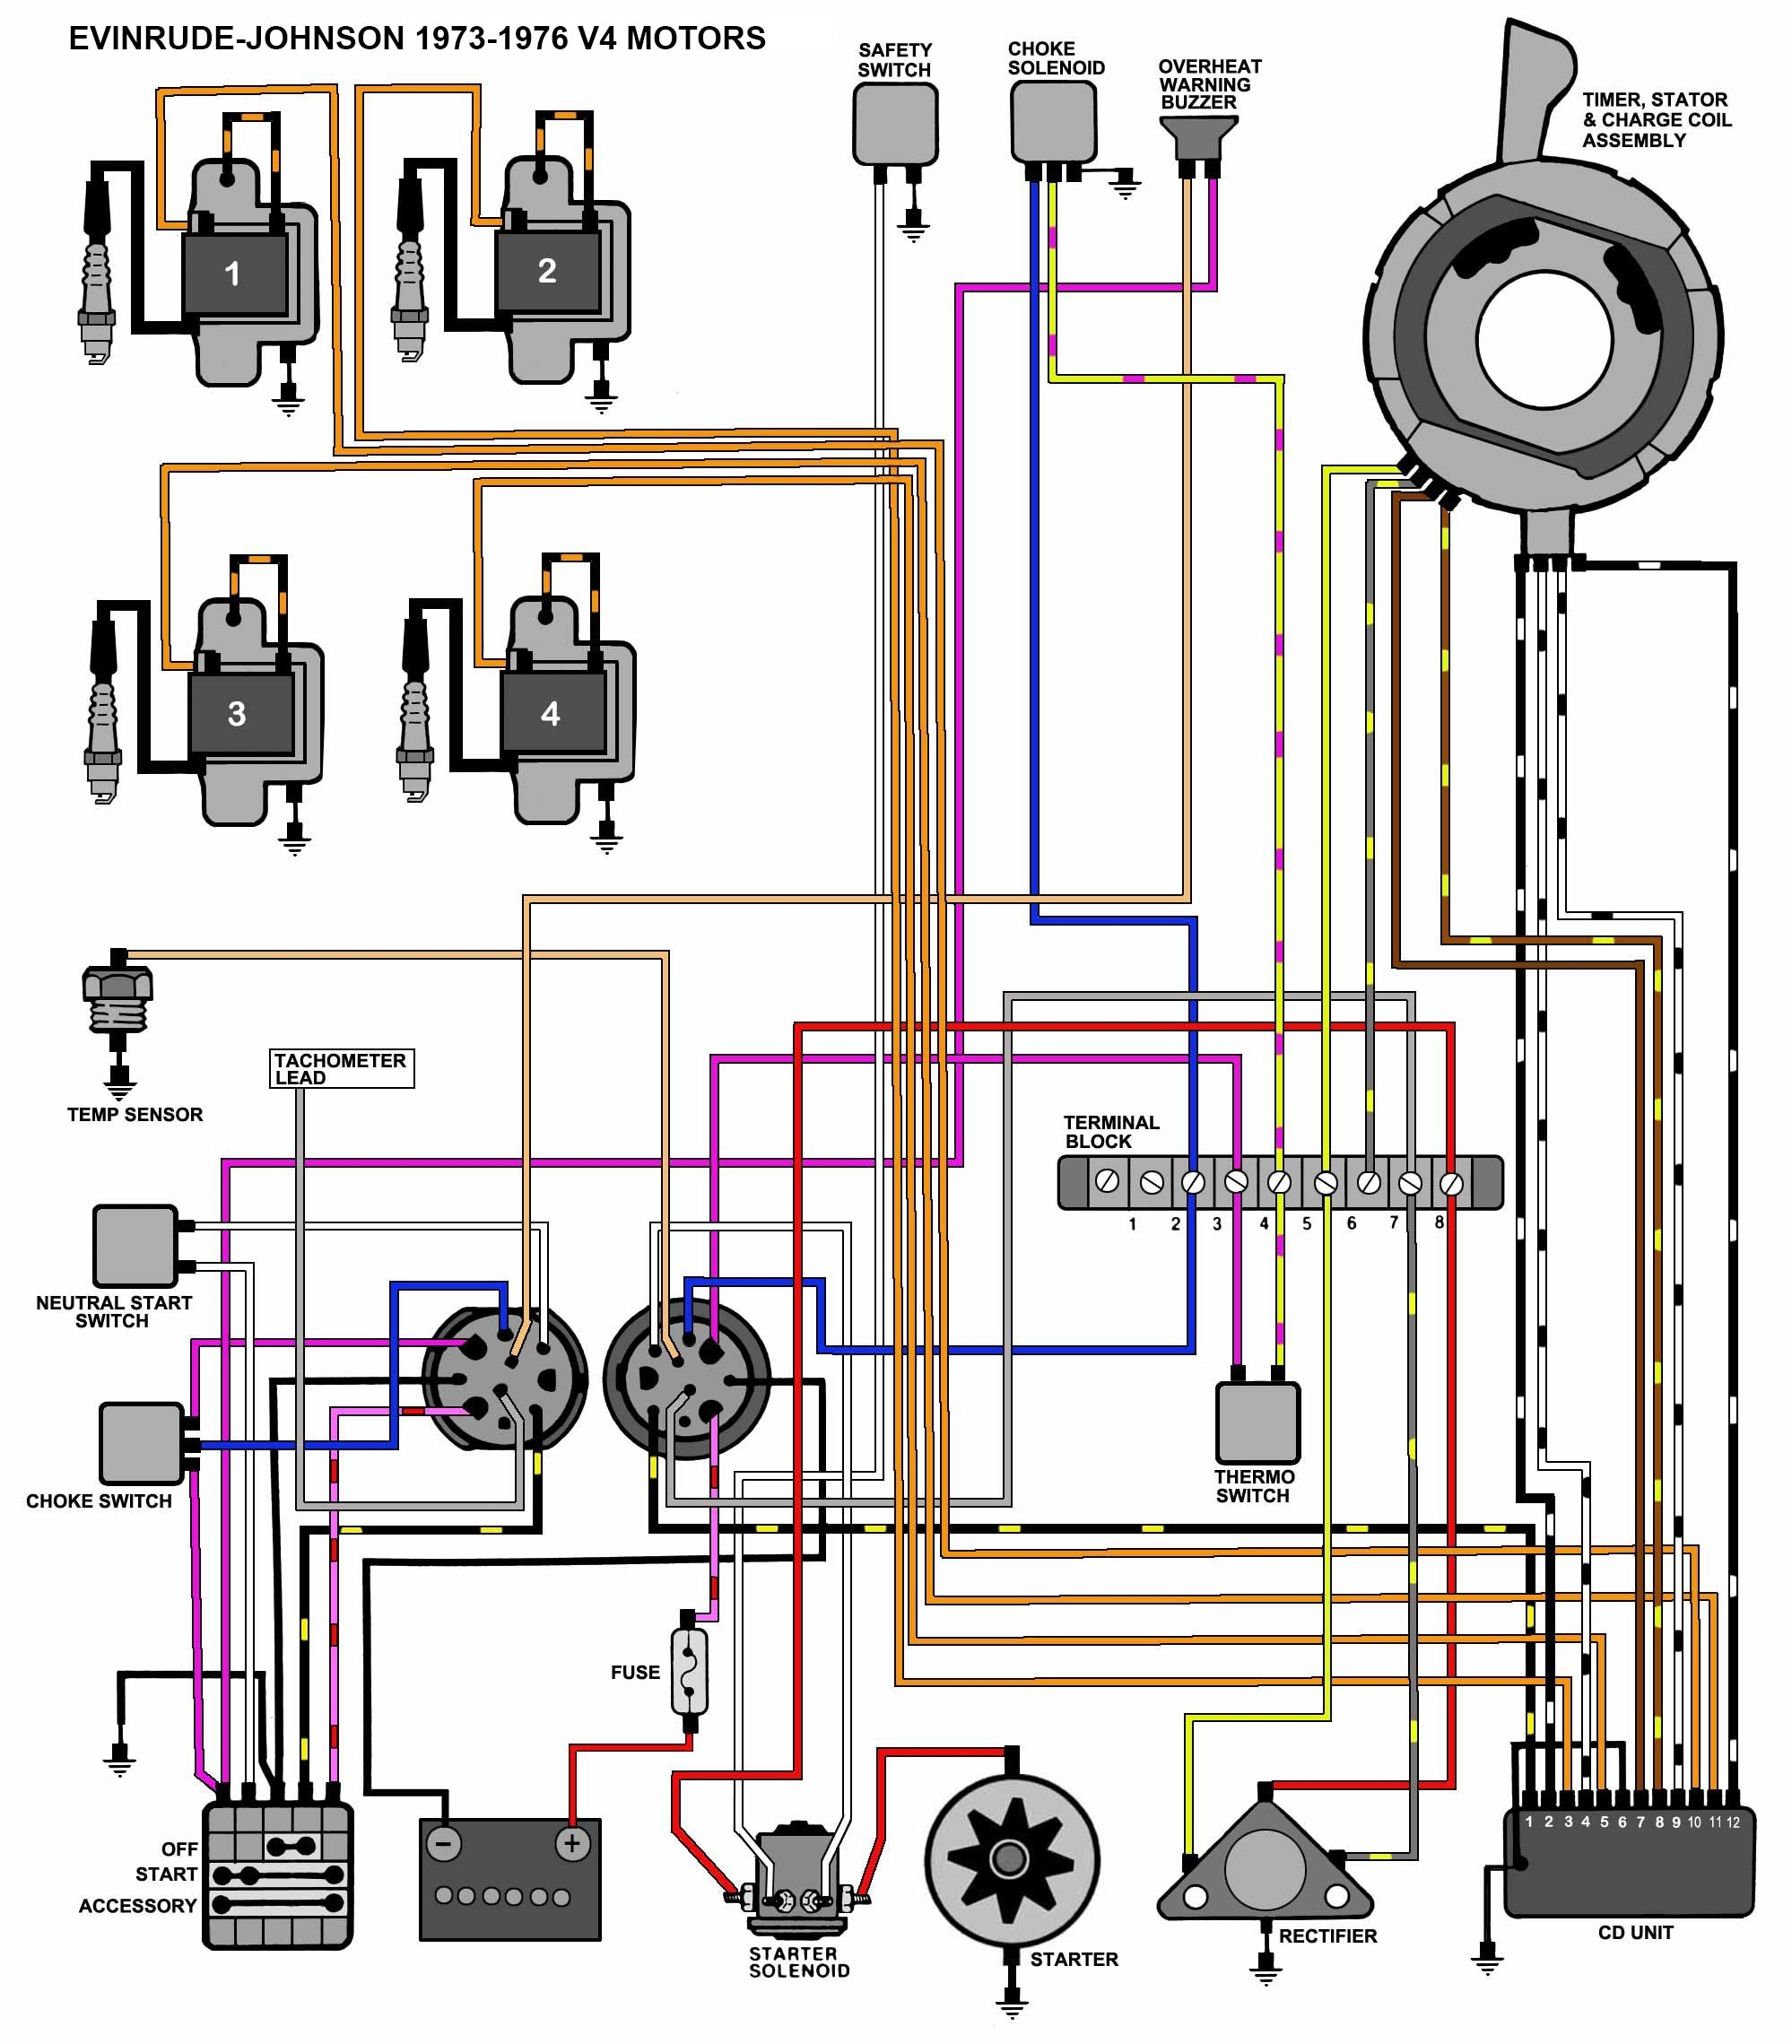 evinrude ignition switch wiring diagram with 1969 omc 55 wiring throughout 70 hp evinrude wiring diagram?resize\\\\\\\\\\\\\\\\\\\\\\\\\\\\\\\=665%2C759\\\\\\\\\\\\\\\\\\\\\\\\\\\\\\\&ssl\\\\\\\\\\\\\\\\\\\\\\\\\\\\\\\=1 1999 70 hp evinrude wiring diagram wiring diagram simonand  at bakdesigns.co